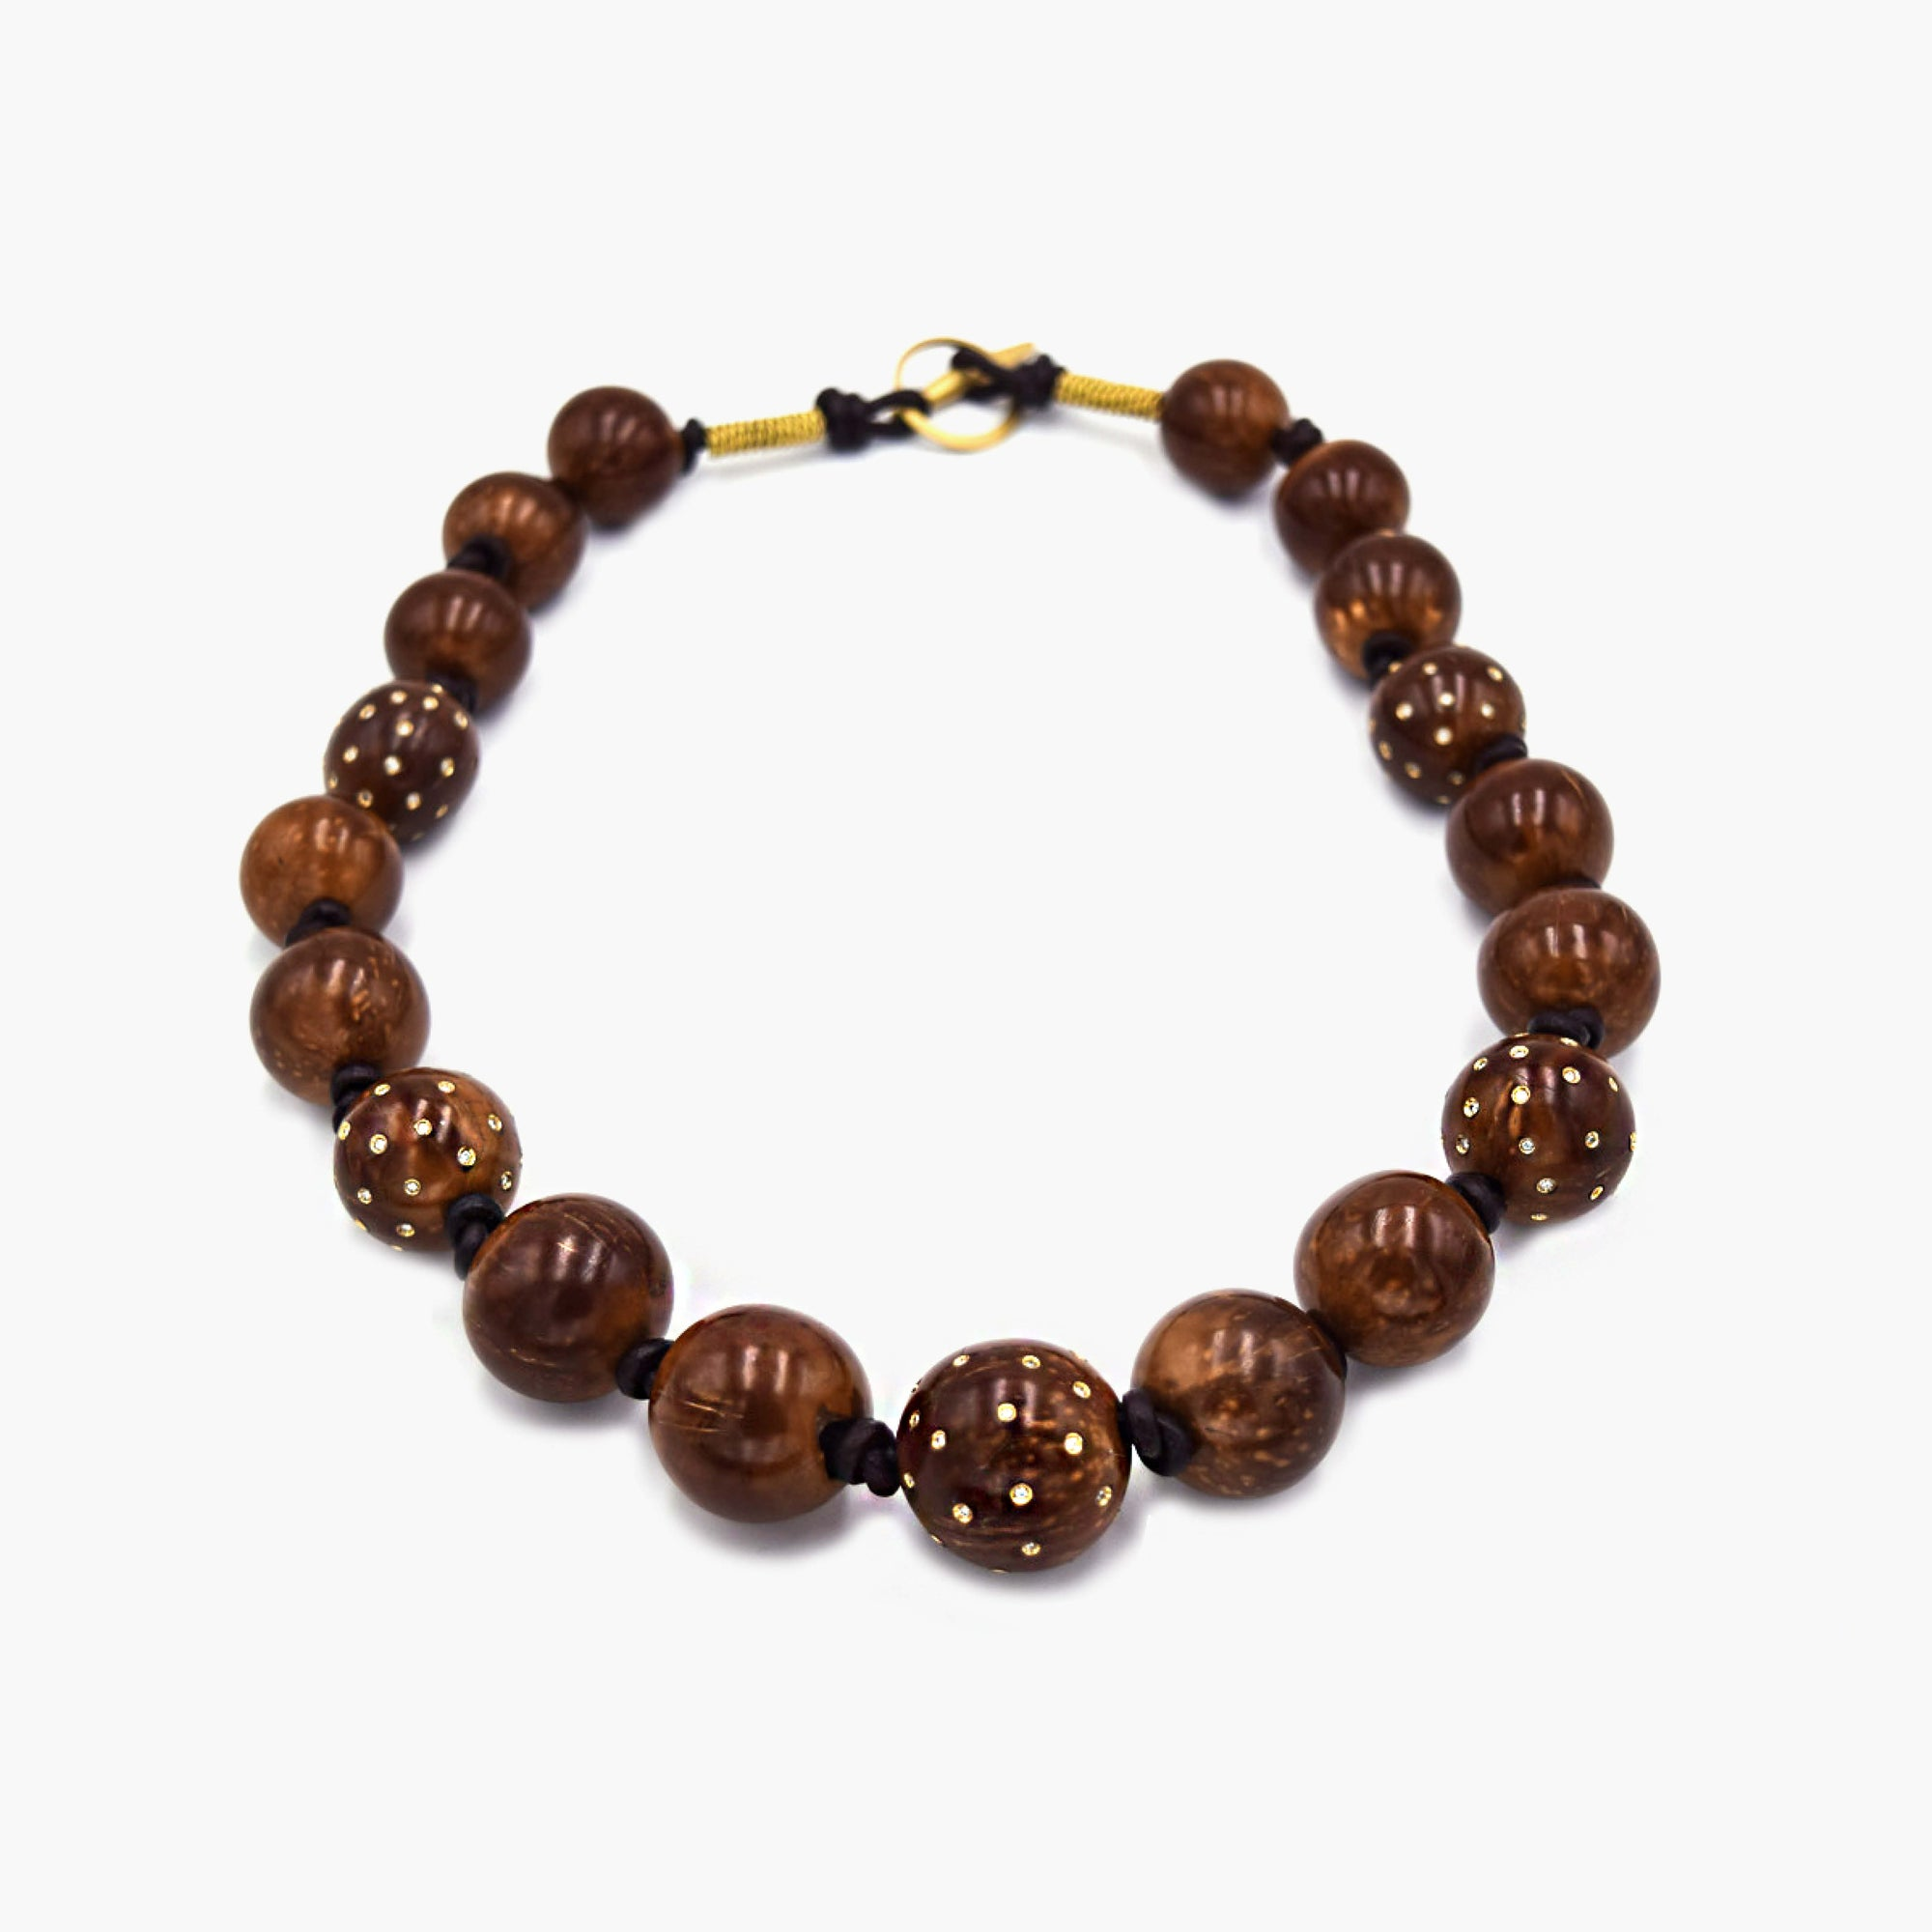 Coconut Bead Necklace with Diamonds